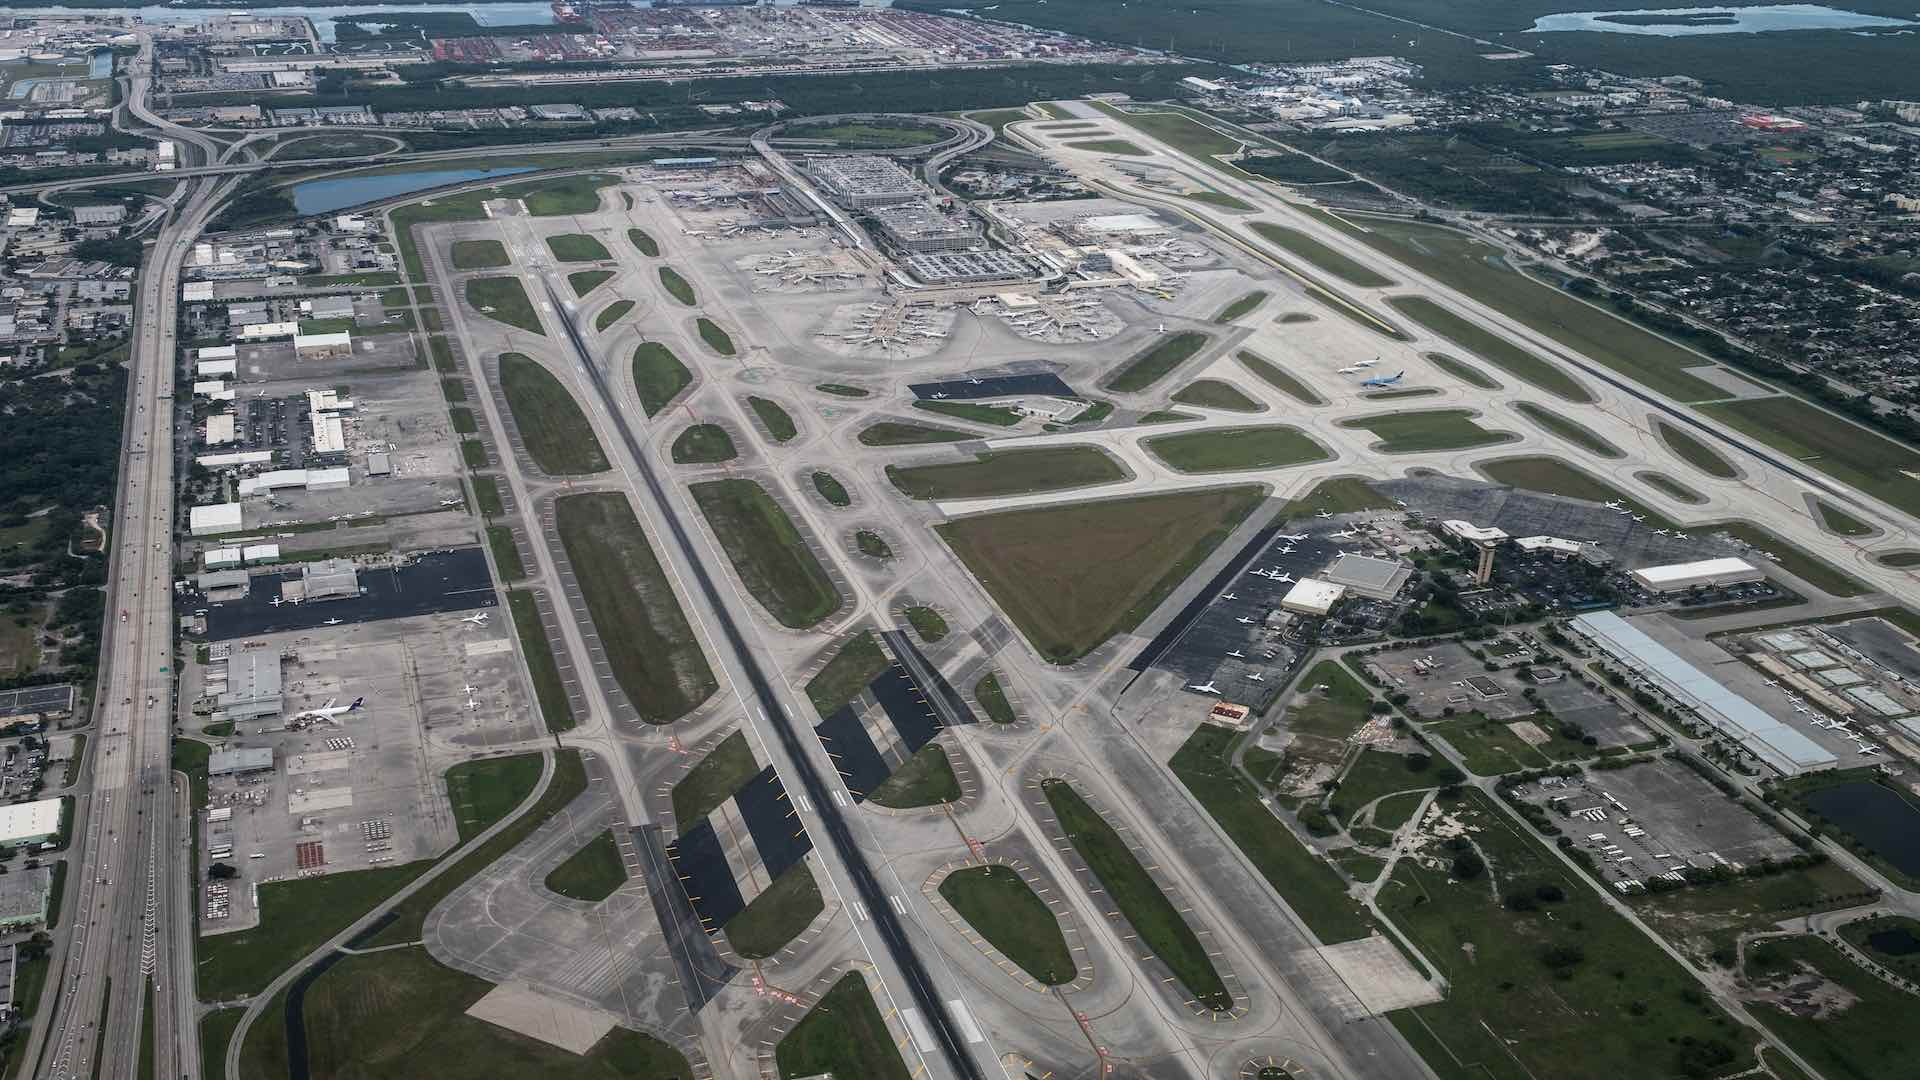 Fort Lauderdale Hollywood Airport